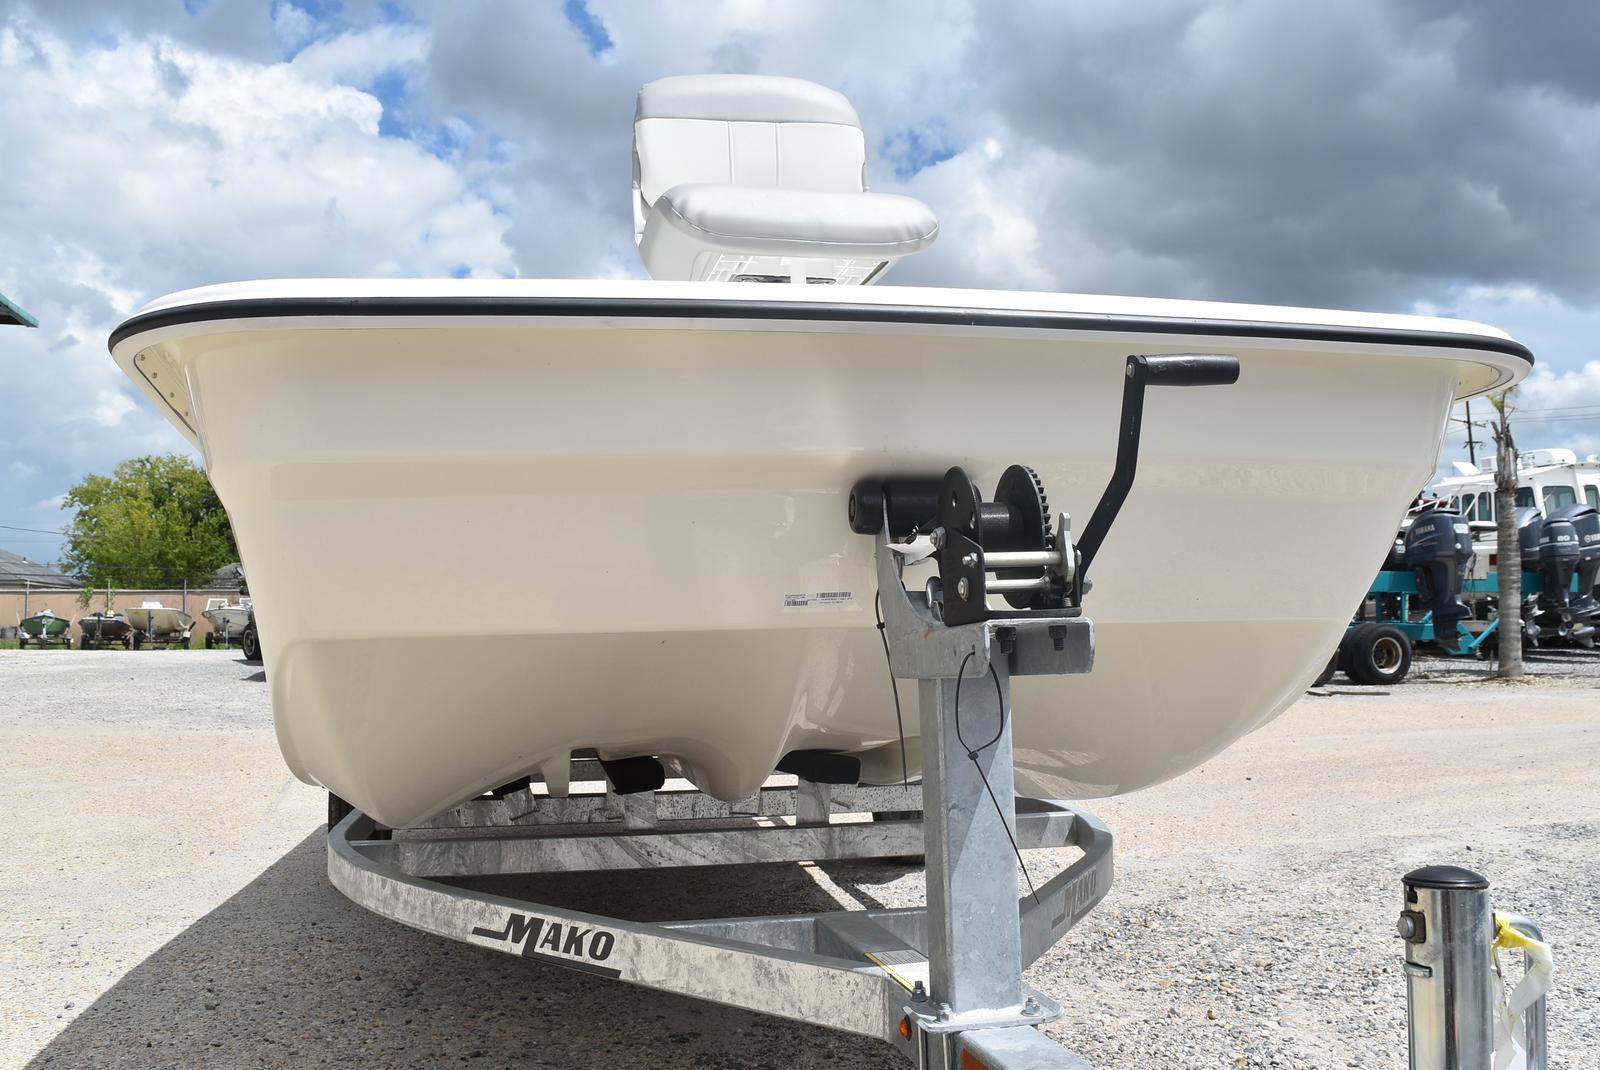 2020 Mako boat for sale, model of the boat is Pro Skiff 17, 75 ELPT & Image # 368 of 702